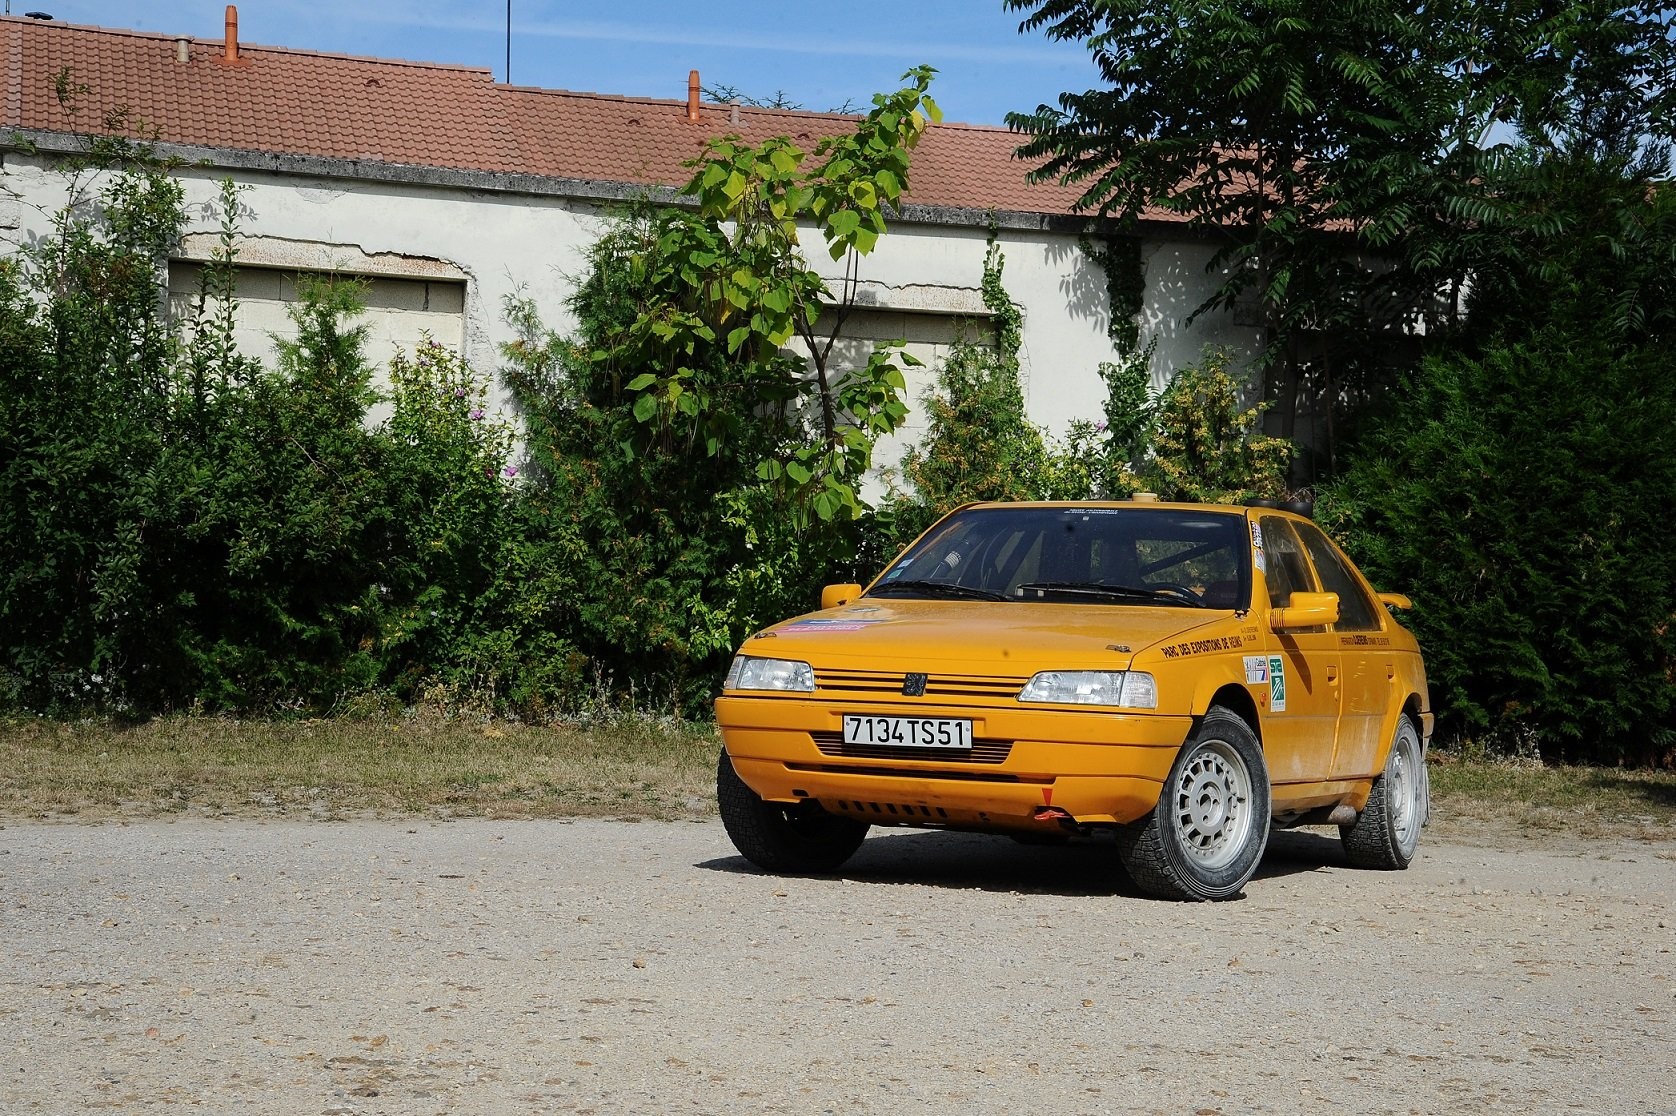 1989 Peugeot 405 MI 16 4x4 Proto «Grand Raid » For Sale by Auction (picture 1 of 5)